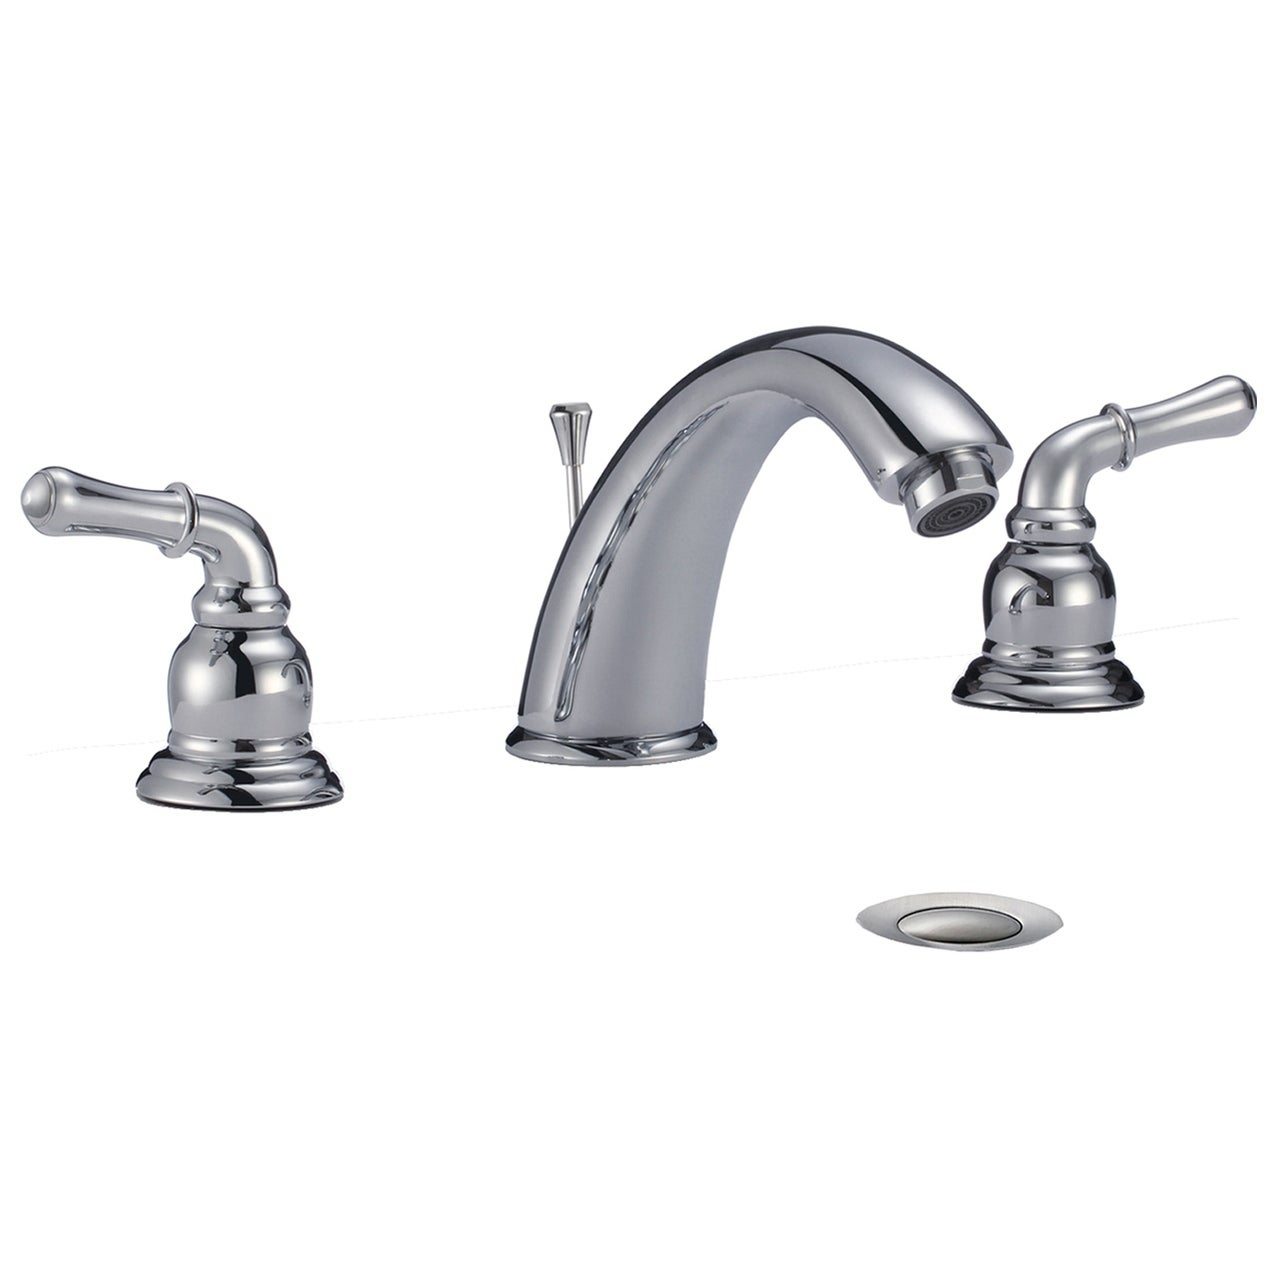 dionna widespread 3-hole bathroom sink faucet with lever handles